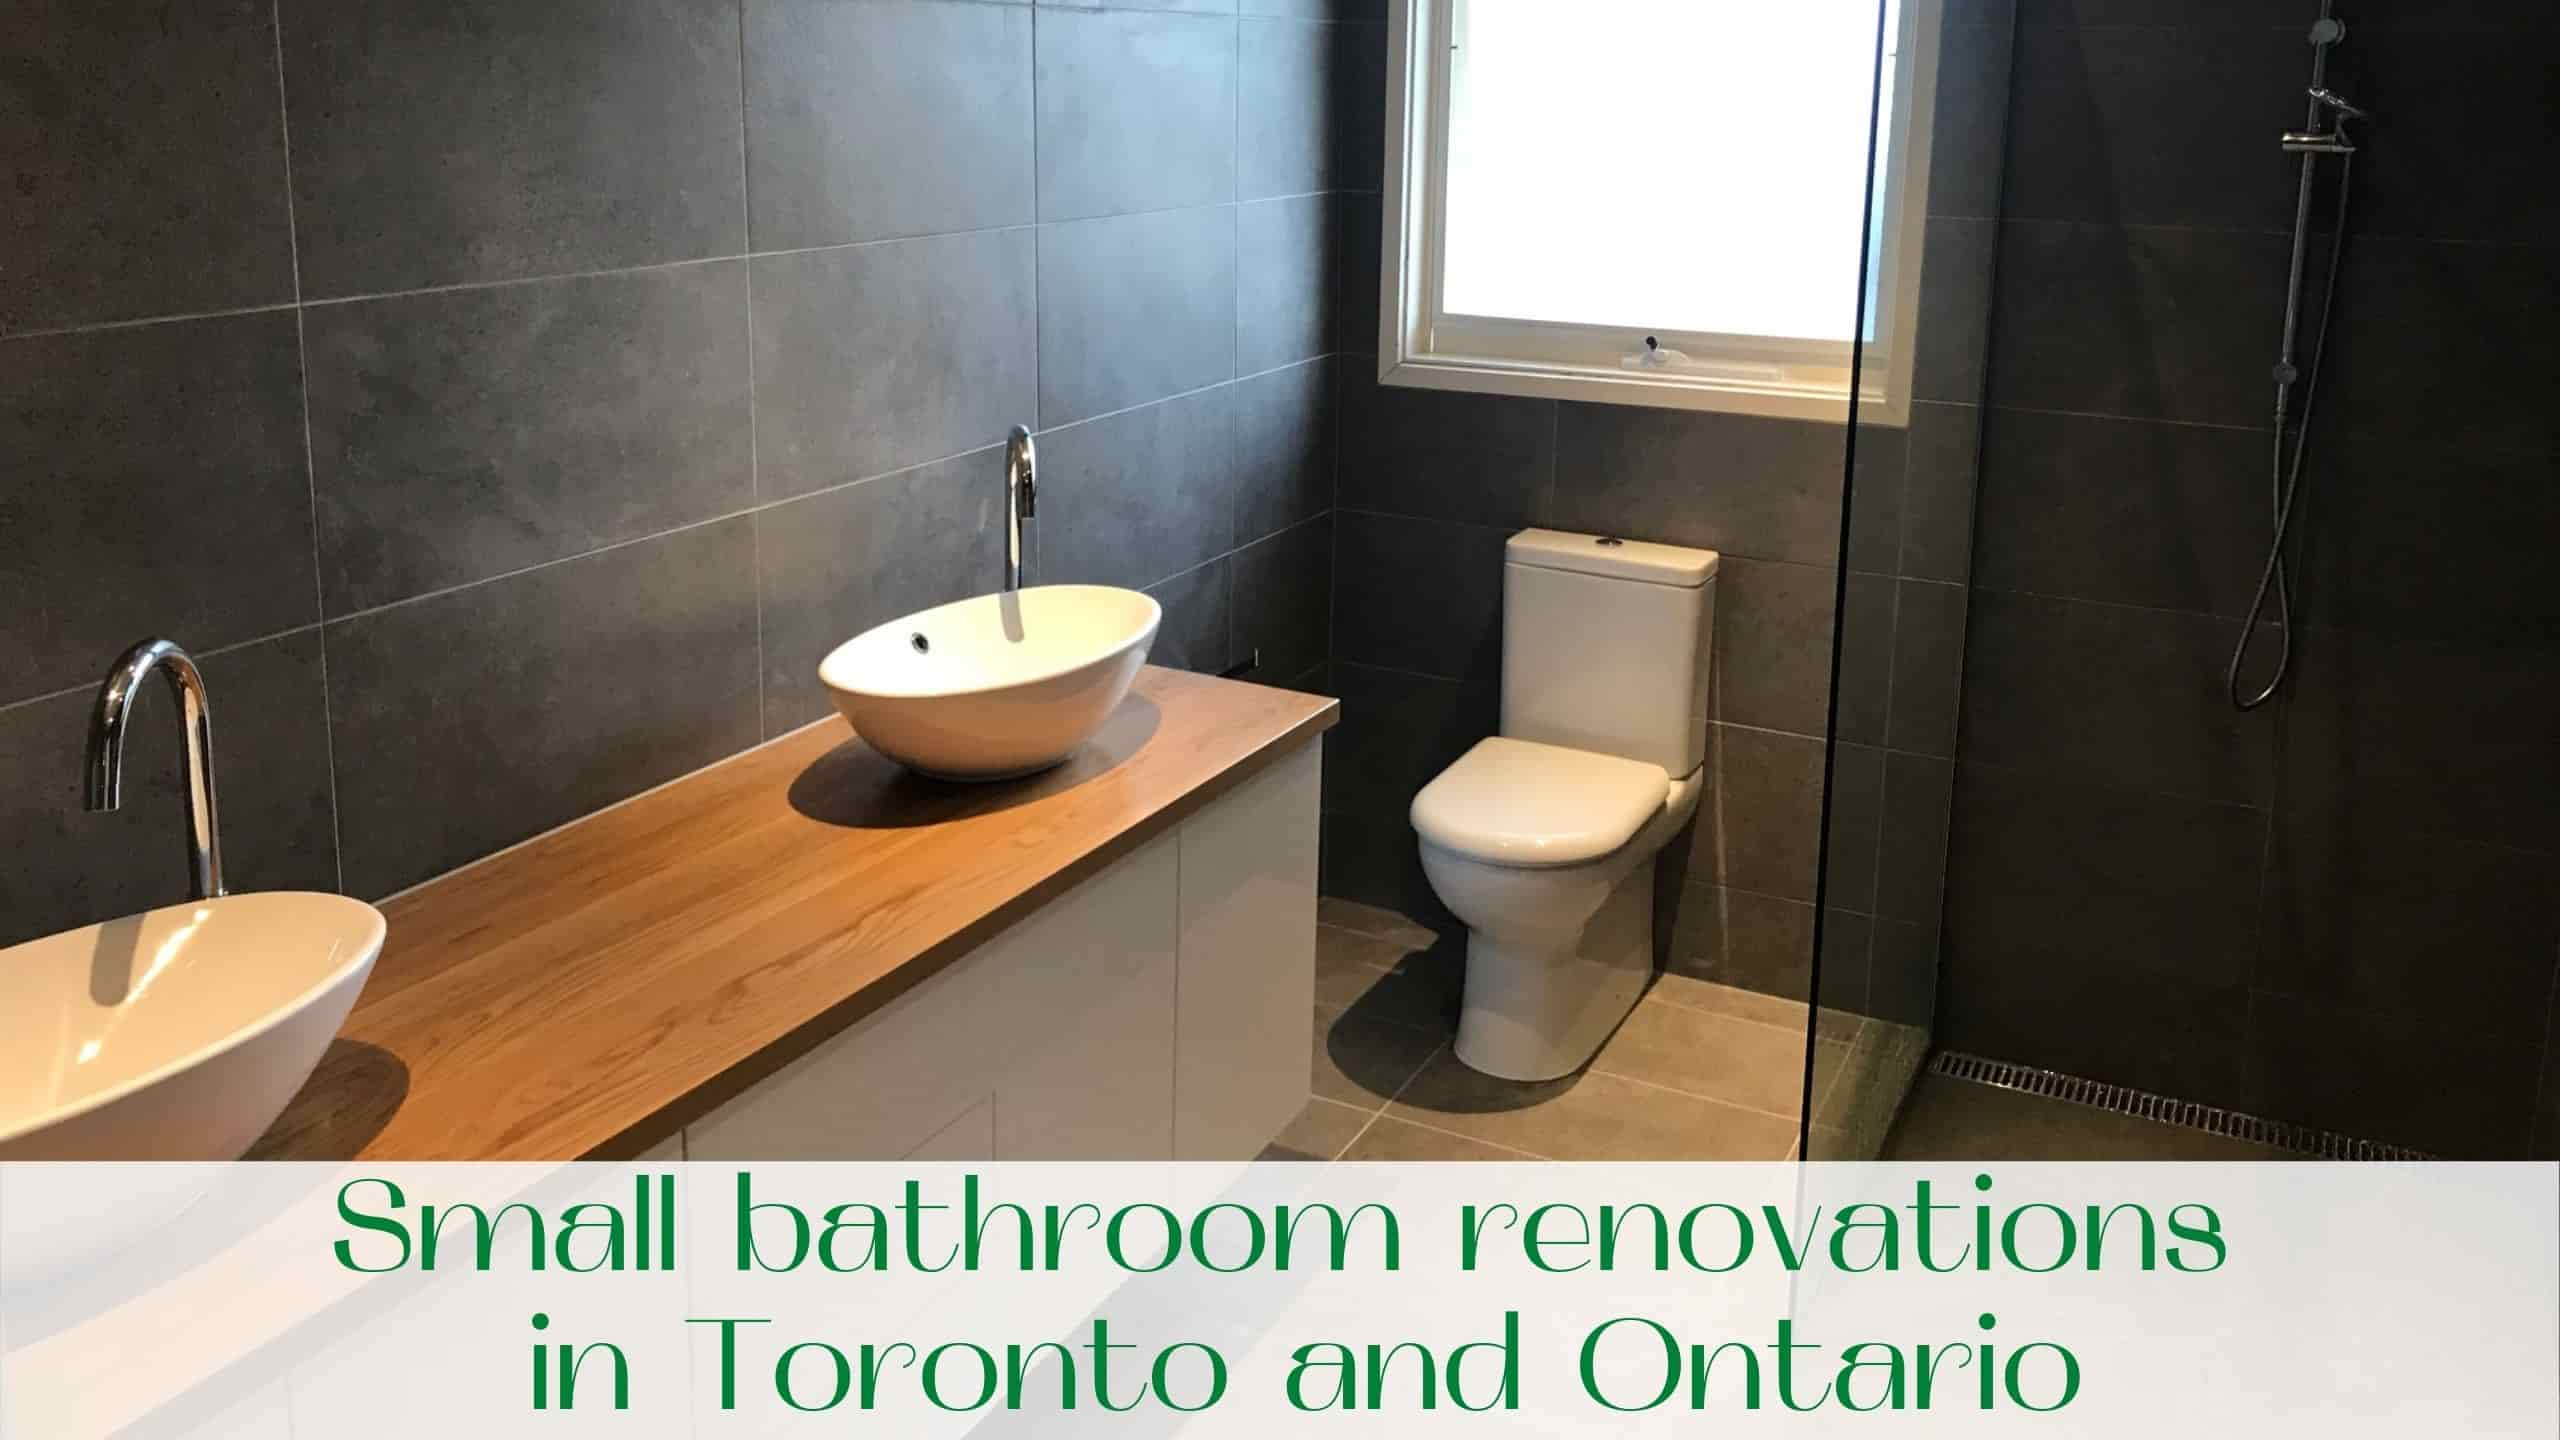 image-Small-bathroom-renovations-in-Toronto-and-Ontario